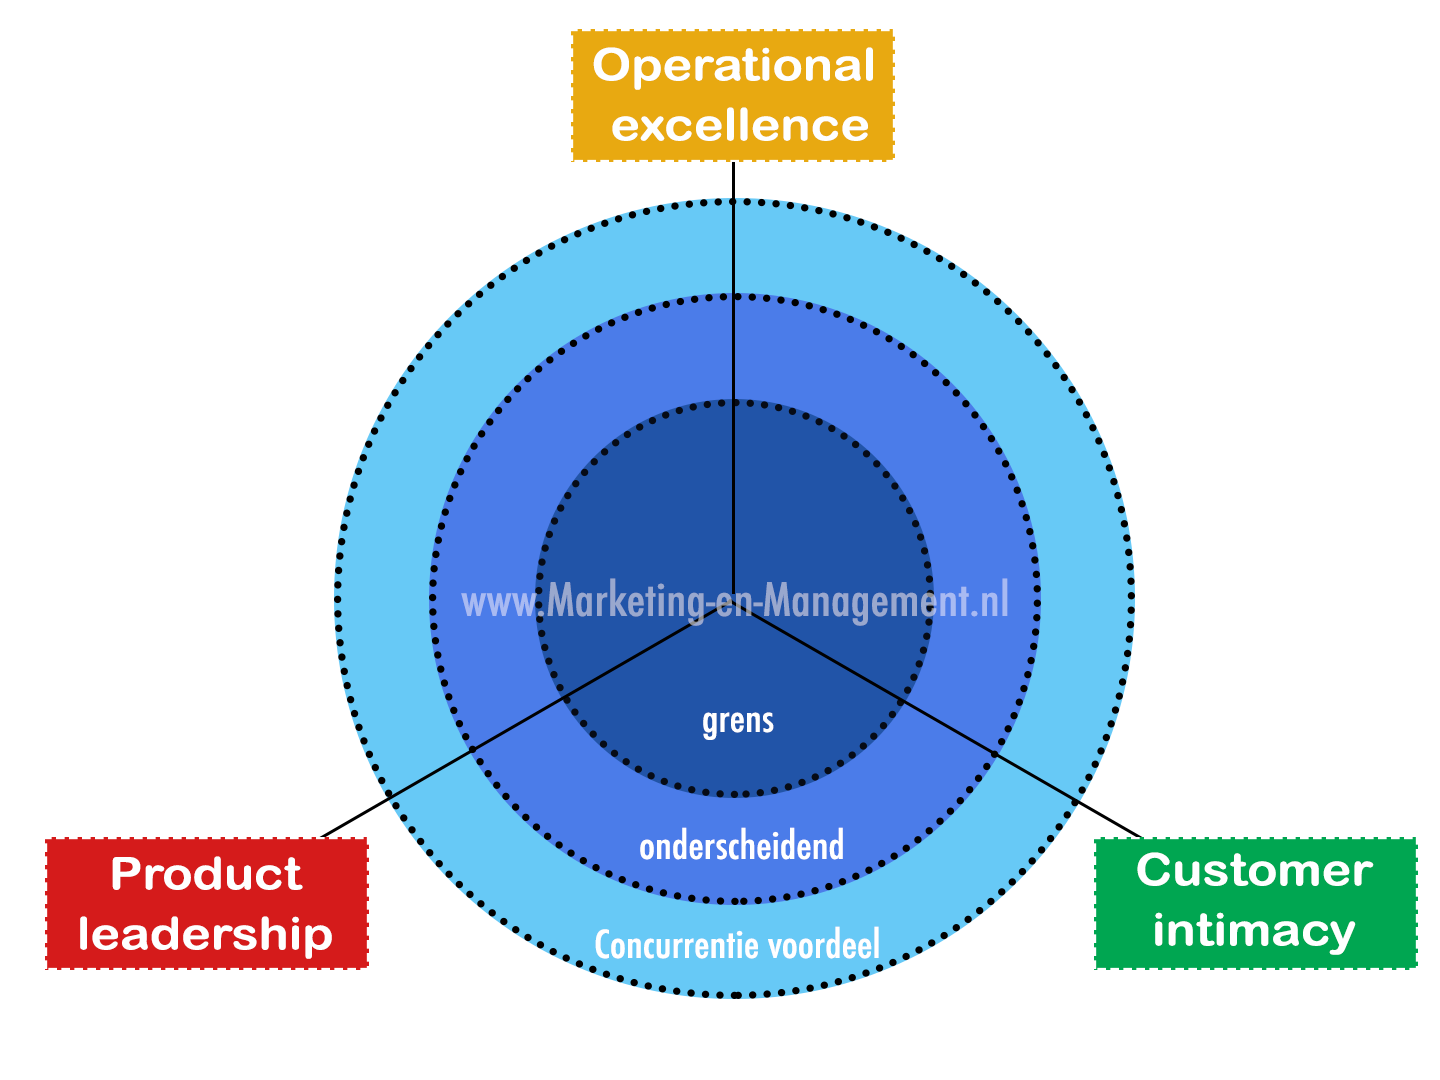 Treacy en Wiersema - Customer intimacy - Operational excellence - product leadership